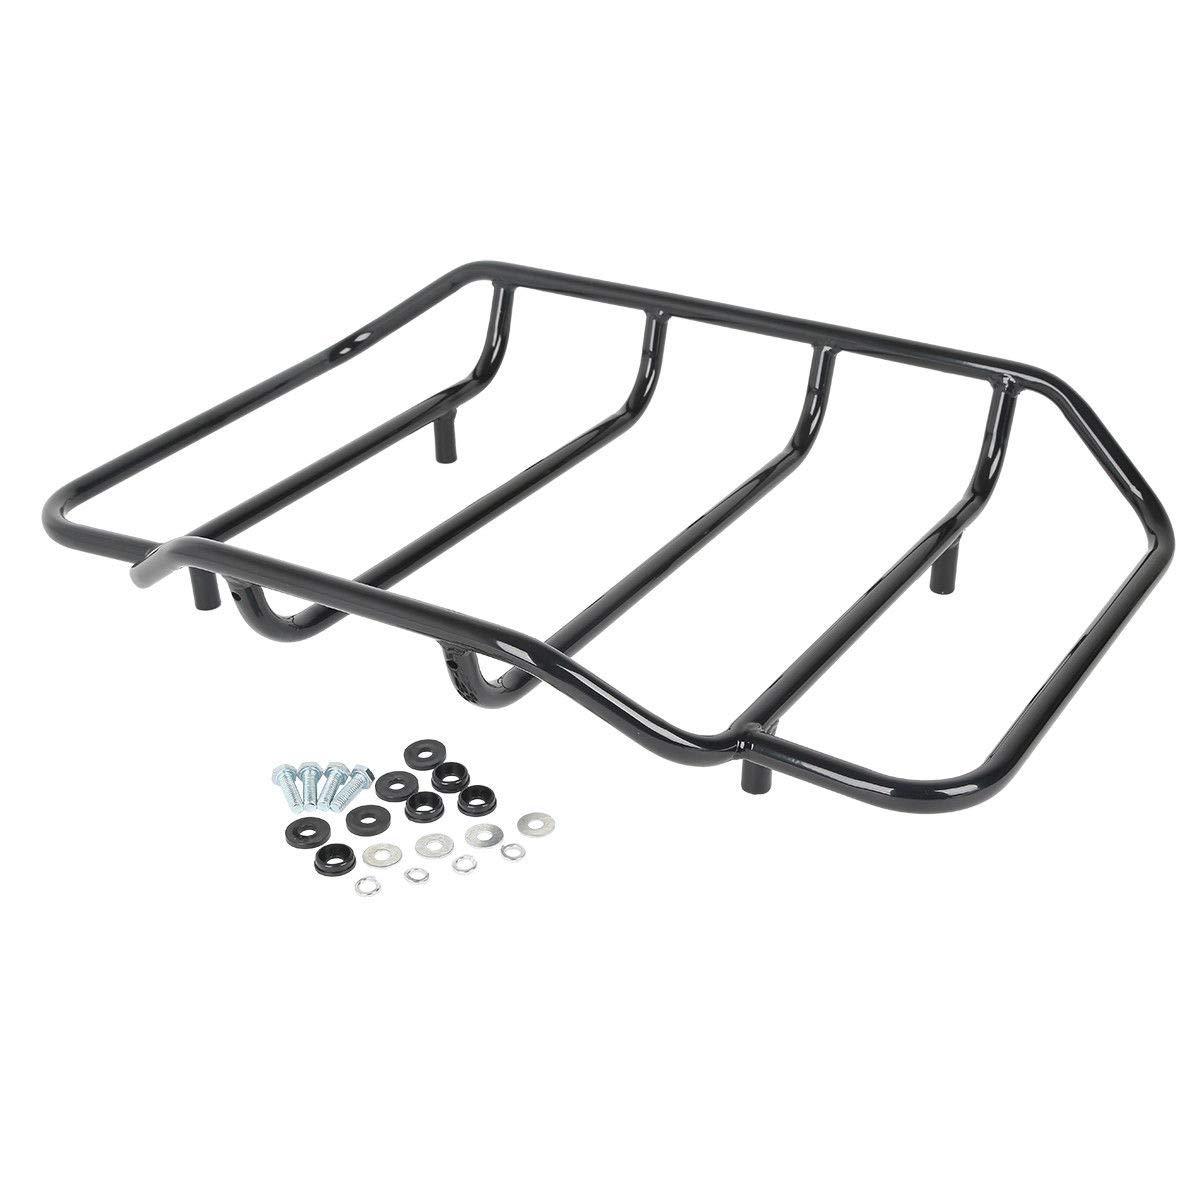 TCMT Black Tour Pak Luggage Rack Fits For Harley Touring Road King Street Glide Classic 1984-2019